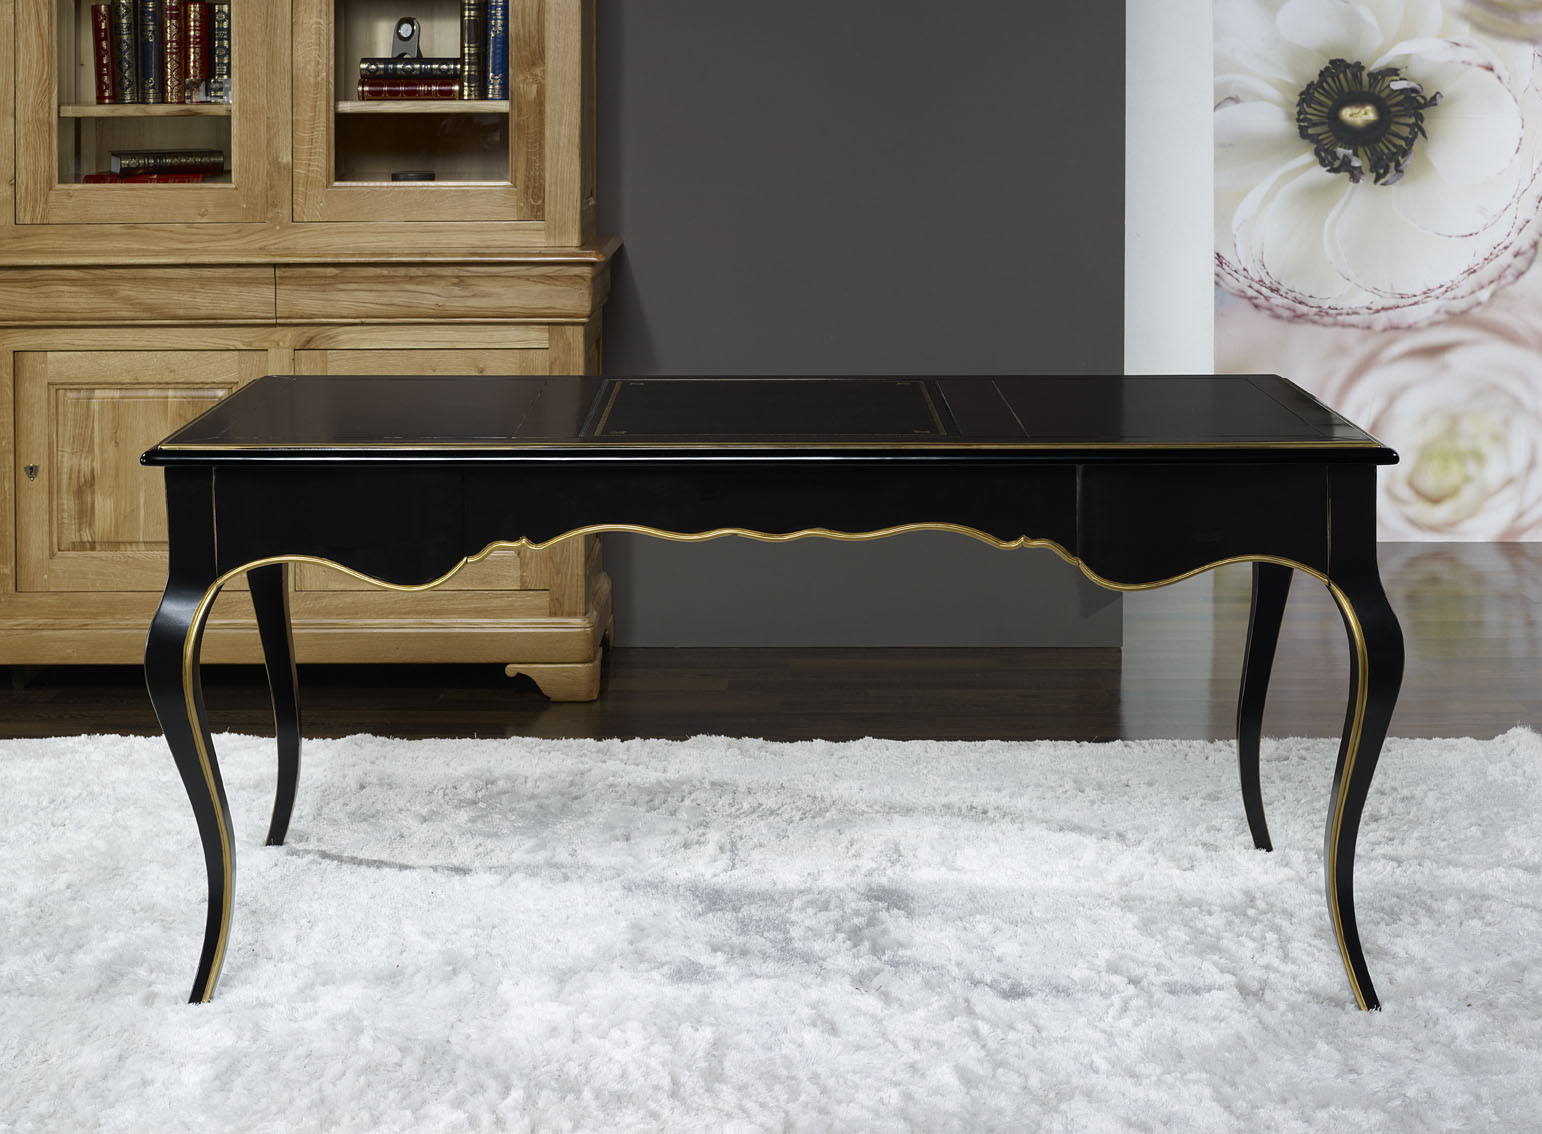 bureau ministre en merisier de style louis xv laque noir et or patin et usur meuble en. Black Bedroom Furniture Sets. Home Design Ideas